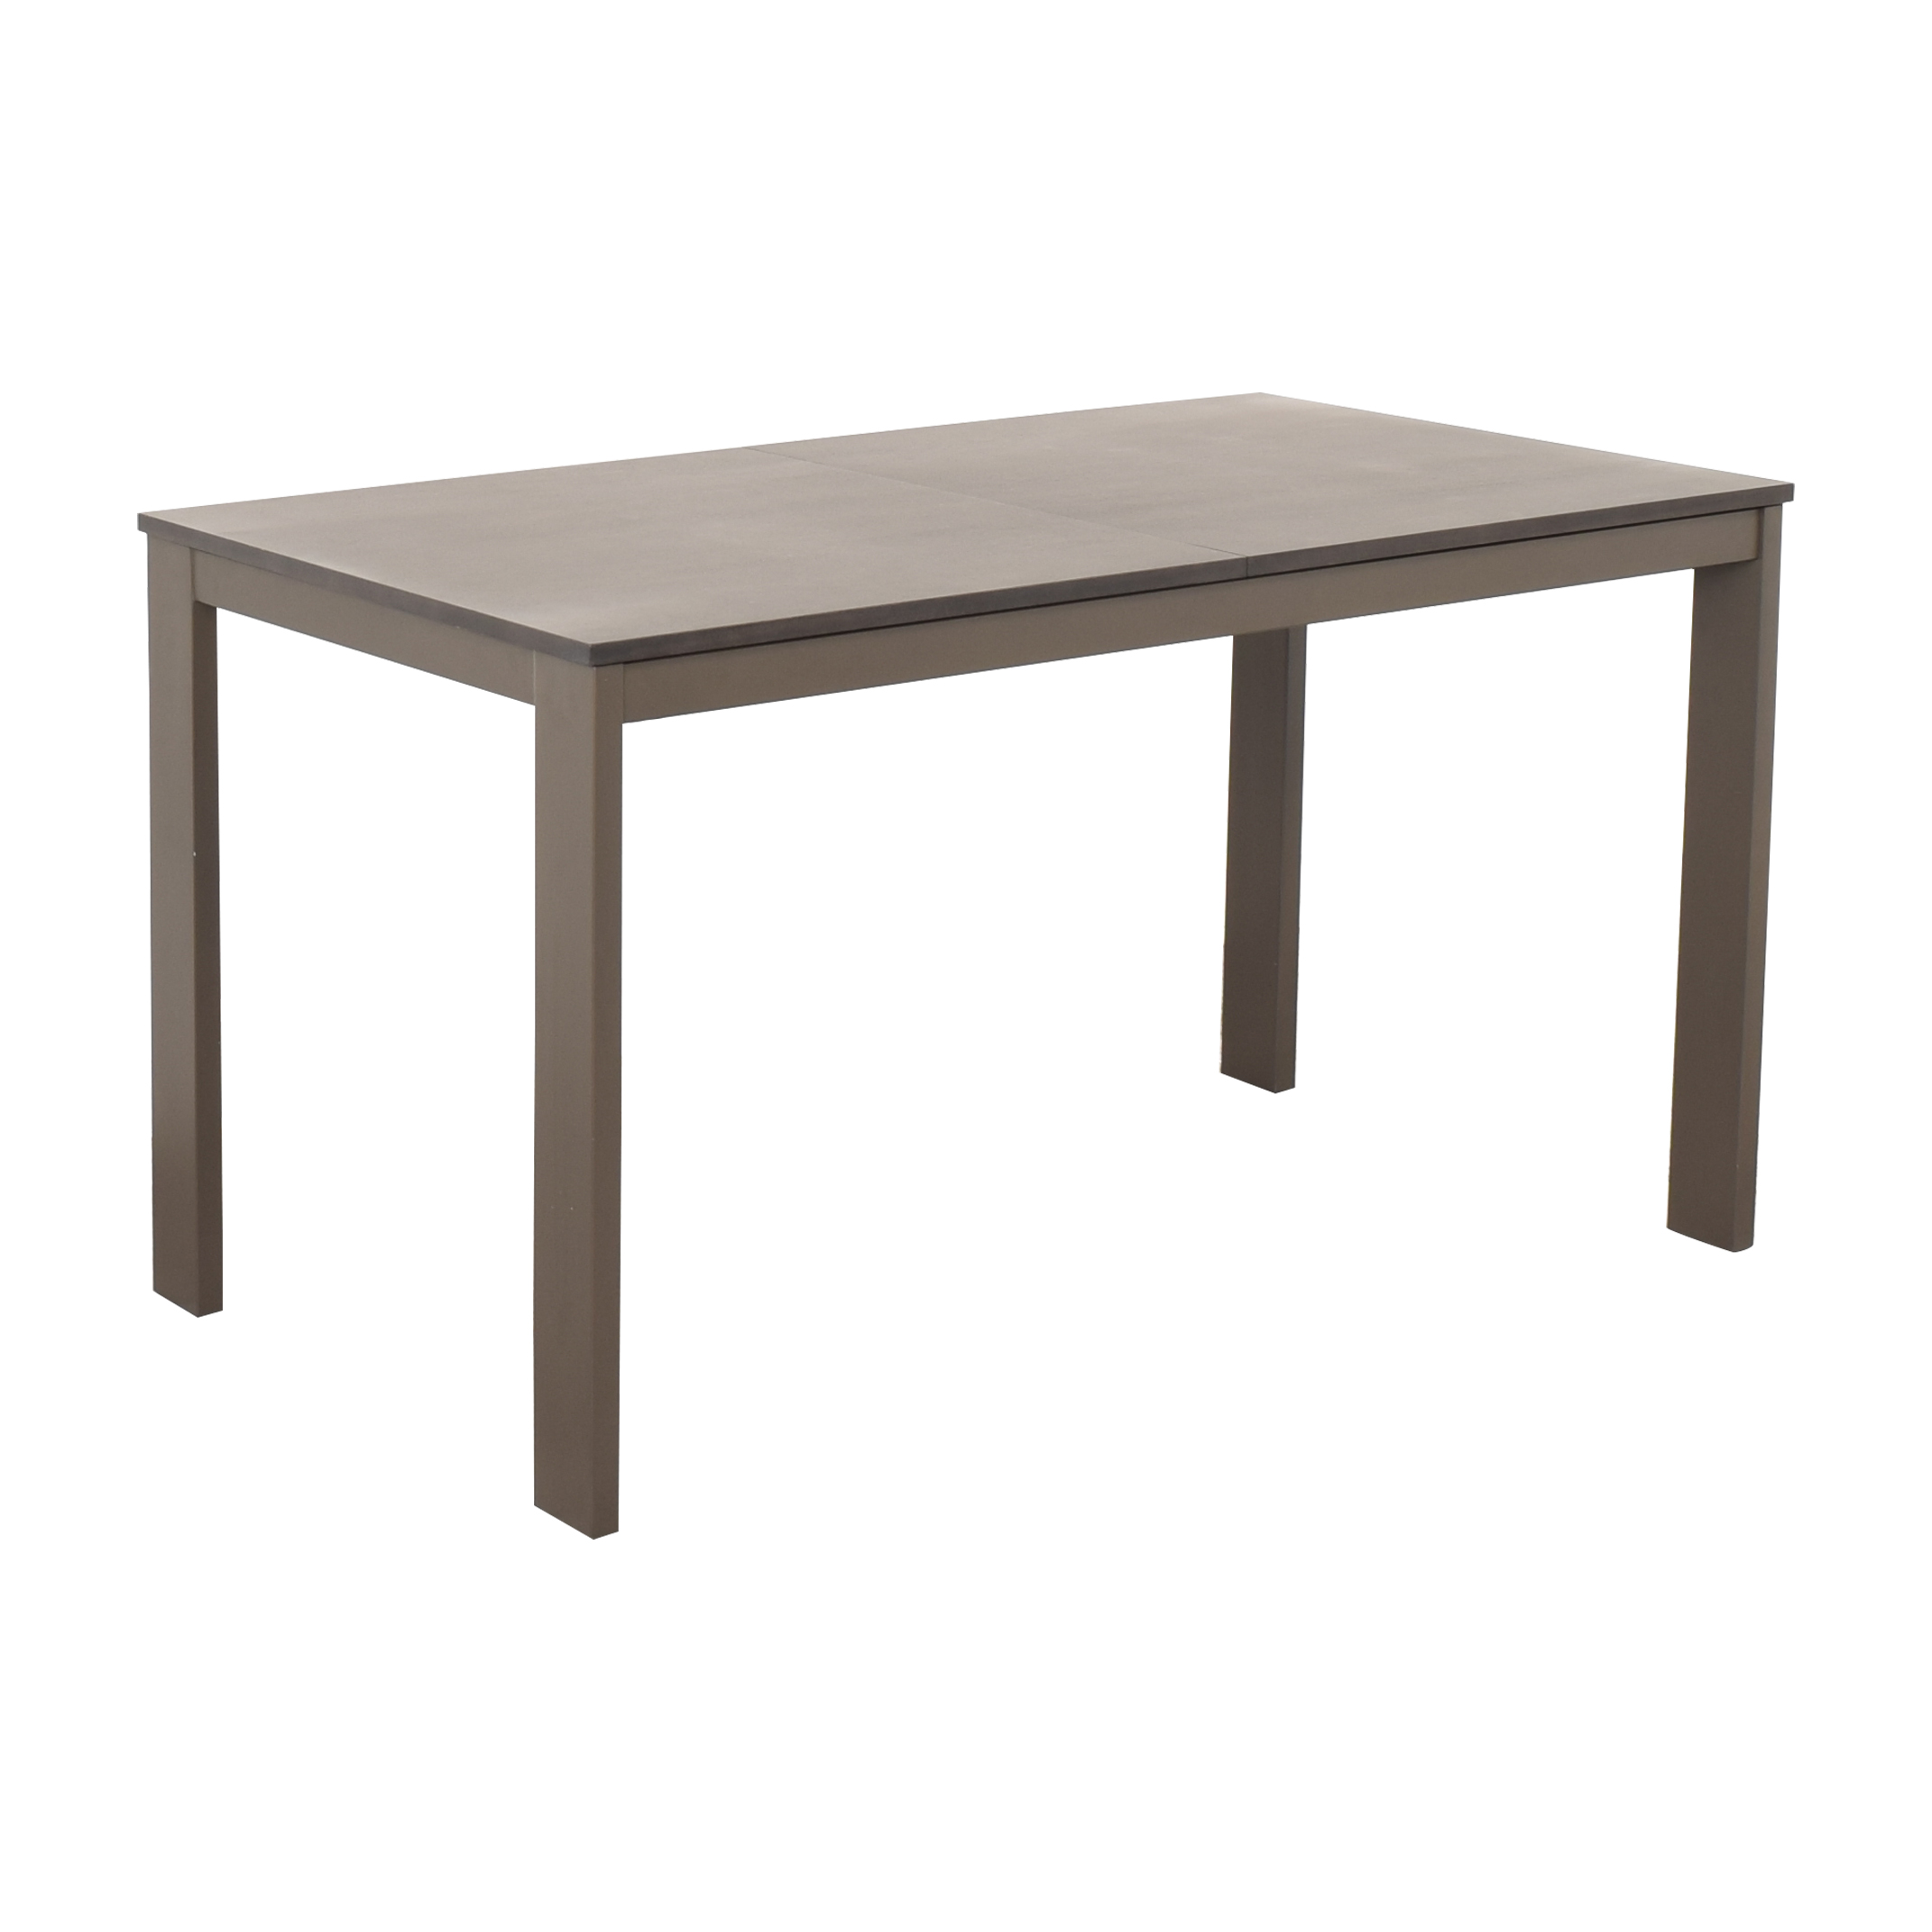 CB2 Core Extension Dining Table CB2